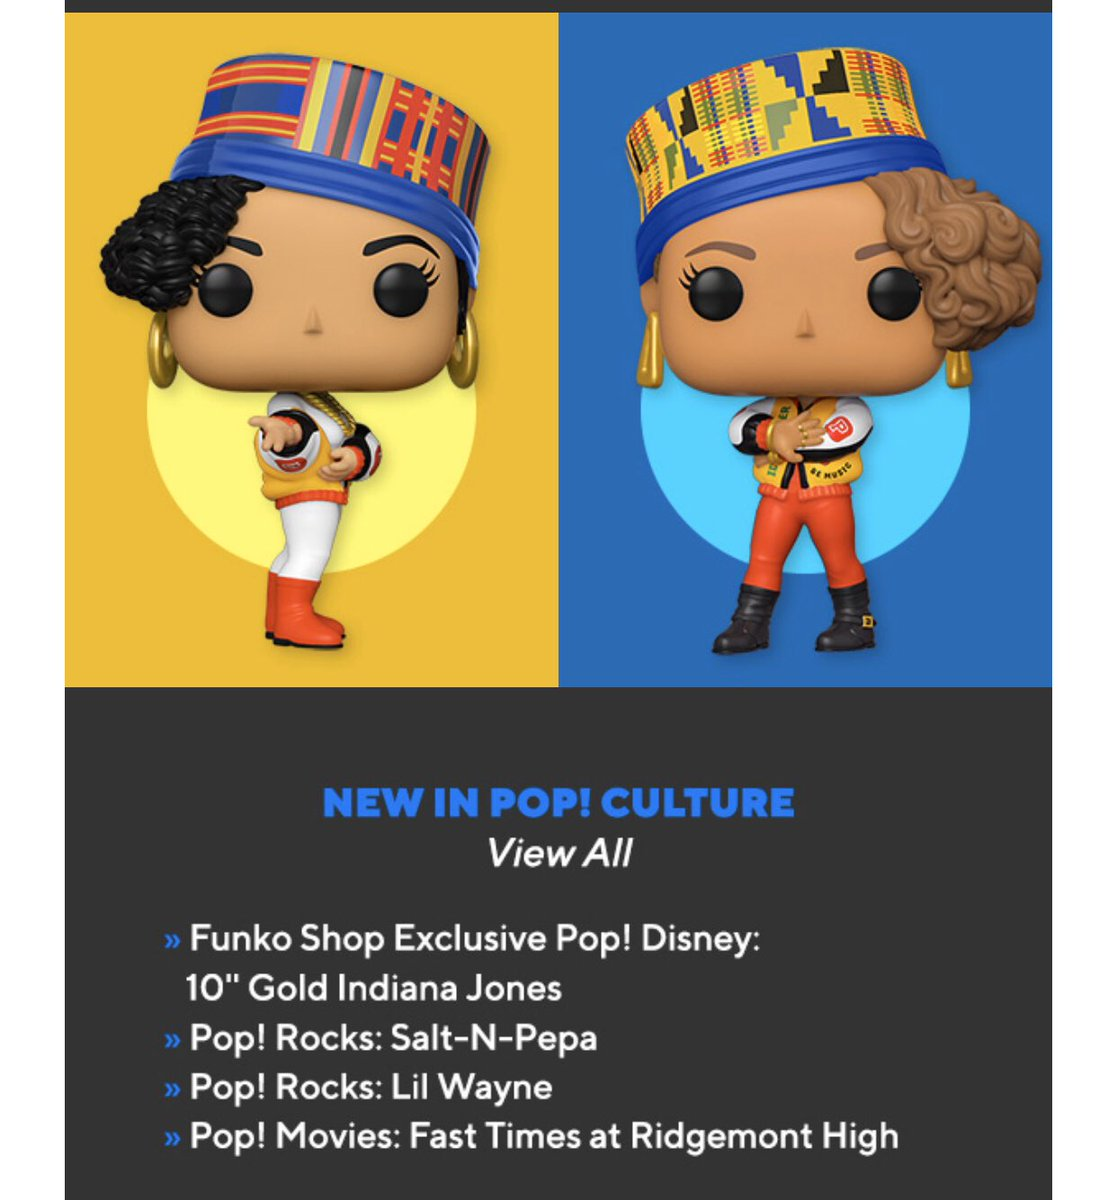 @OriginalFunko why #saltnpeppa, #lilwayne have pops but none for @OfficialTLC  yet. I need a @TheRealTBOZ @officialchilli & #LeftEye pop in my collection!  #TLC see pic for the perfect design!pic.twitter.com/R5my7q1roH